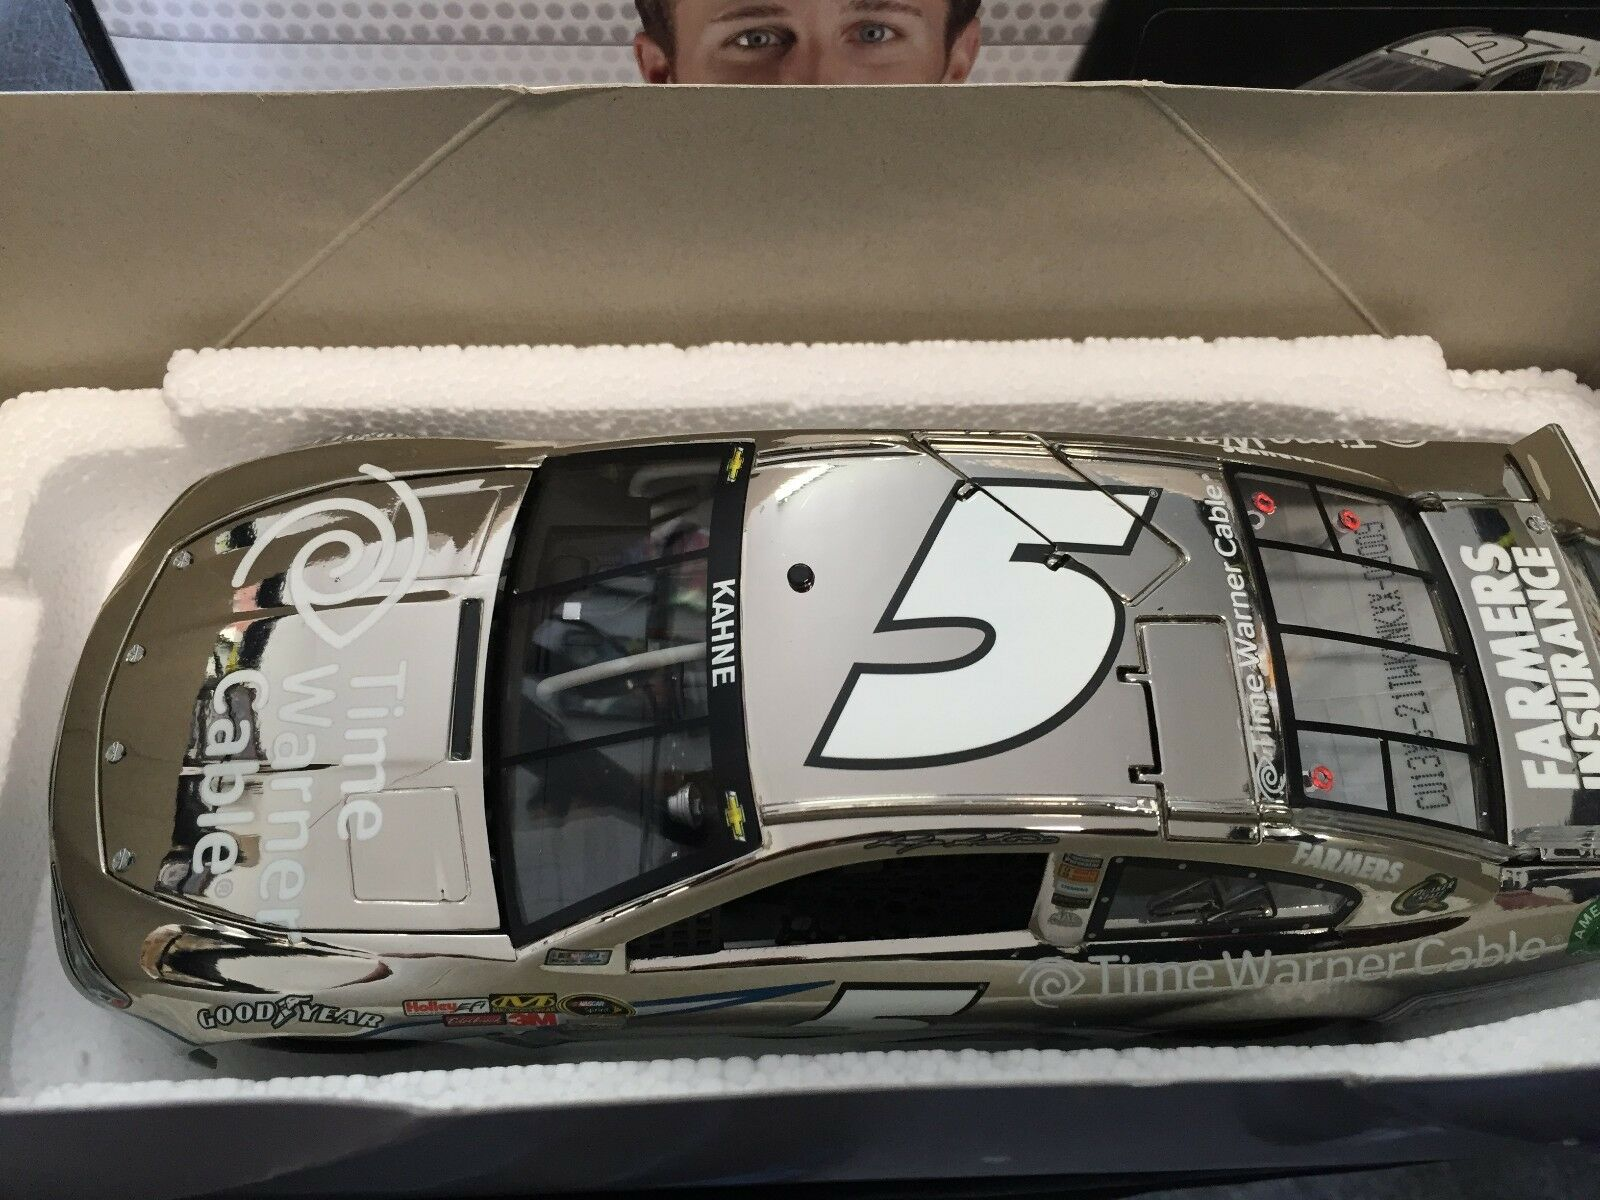 1 24 acción Kasey Kahne  5 Time Warner Cable 1 de 144  9 2013 Chevy Ss  Níquel